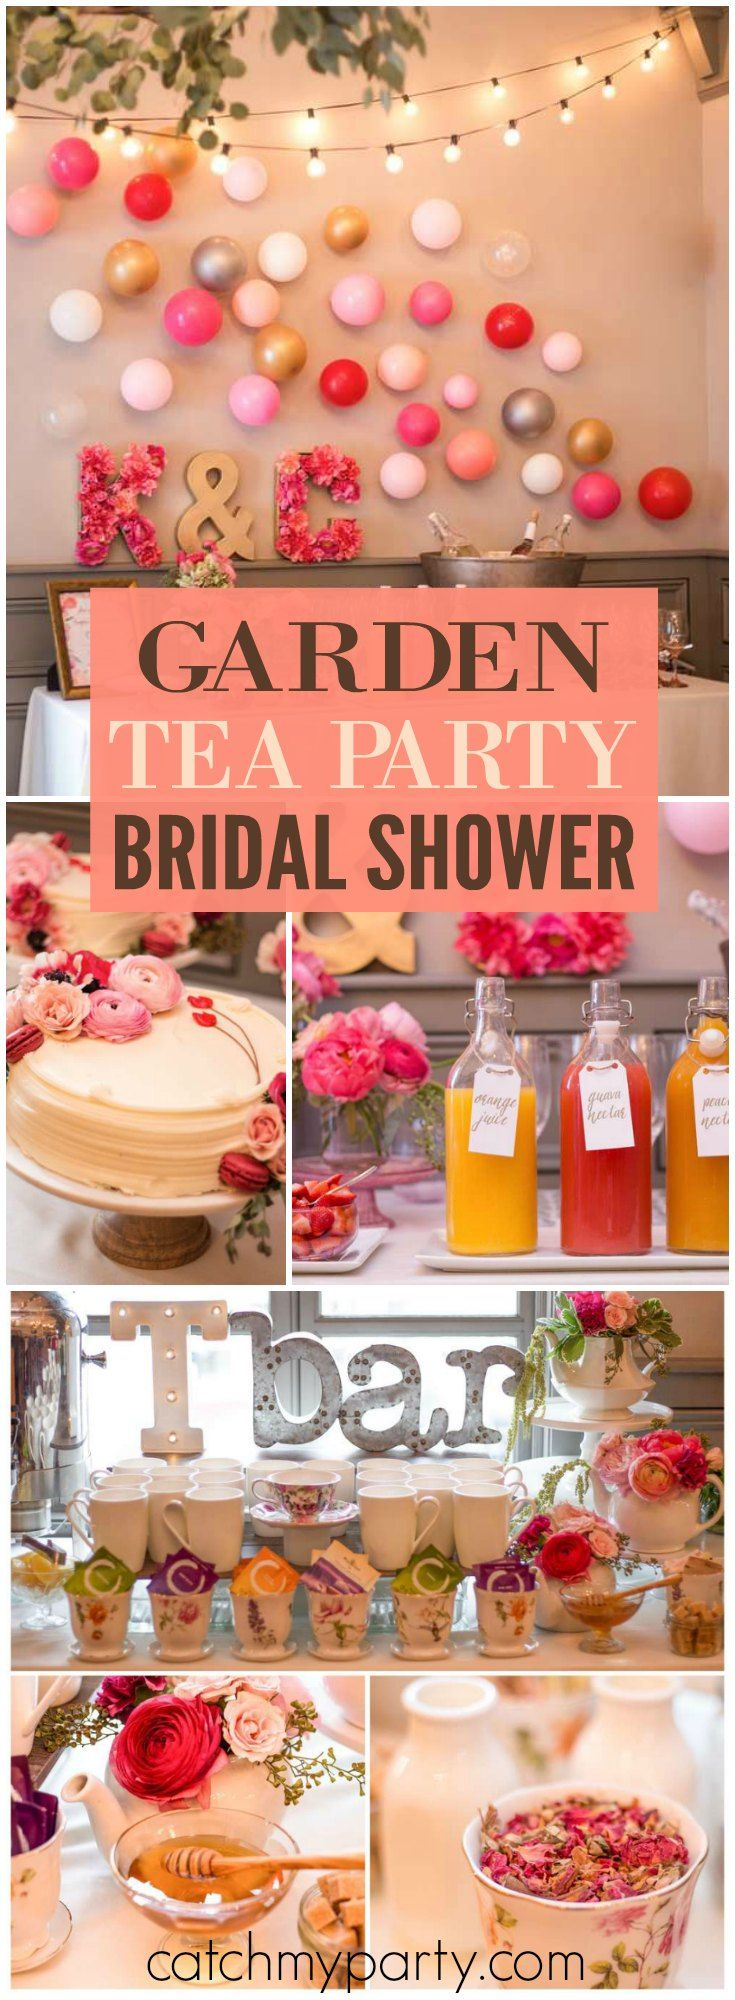 martha to s maid shower decorations honor wedding planning images weddings party marthaweddings bachelorette of bridal make pinterest on ideas guide the stewart best